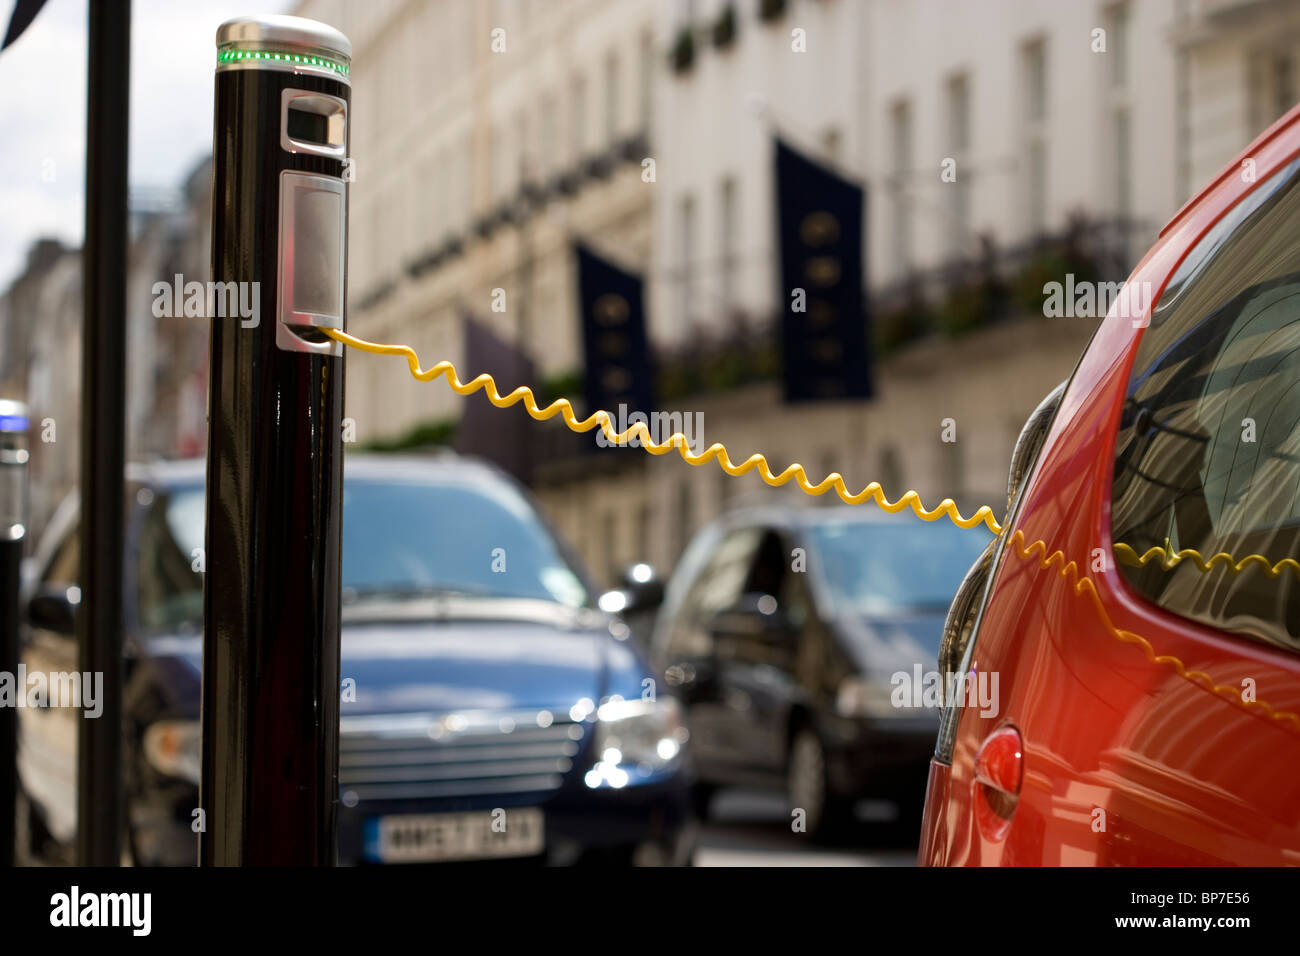 electric car in a London street being recharged - Stock Image